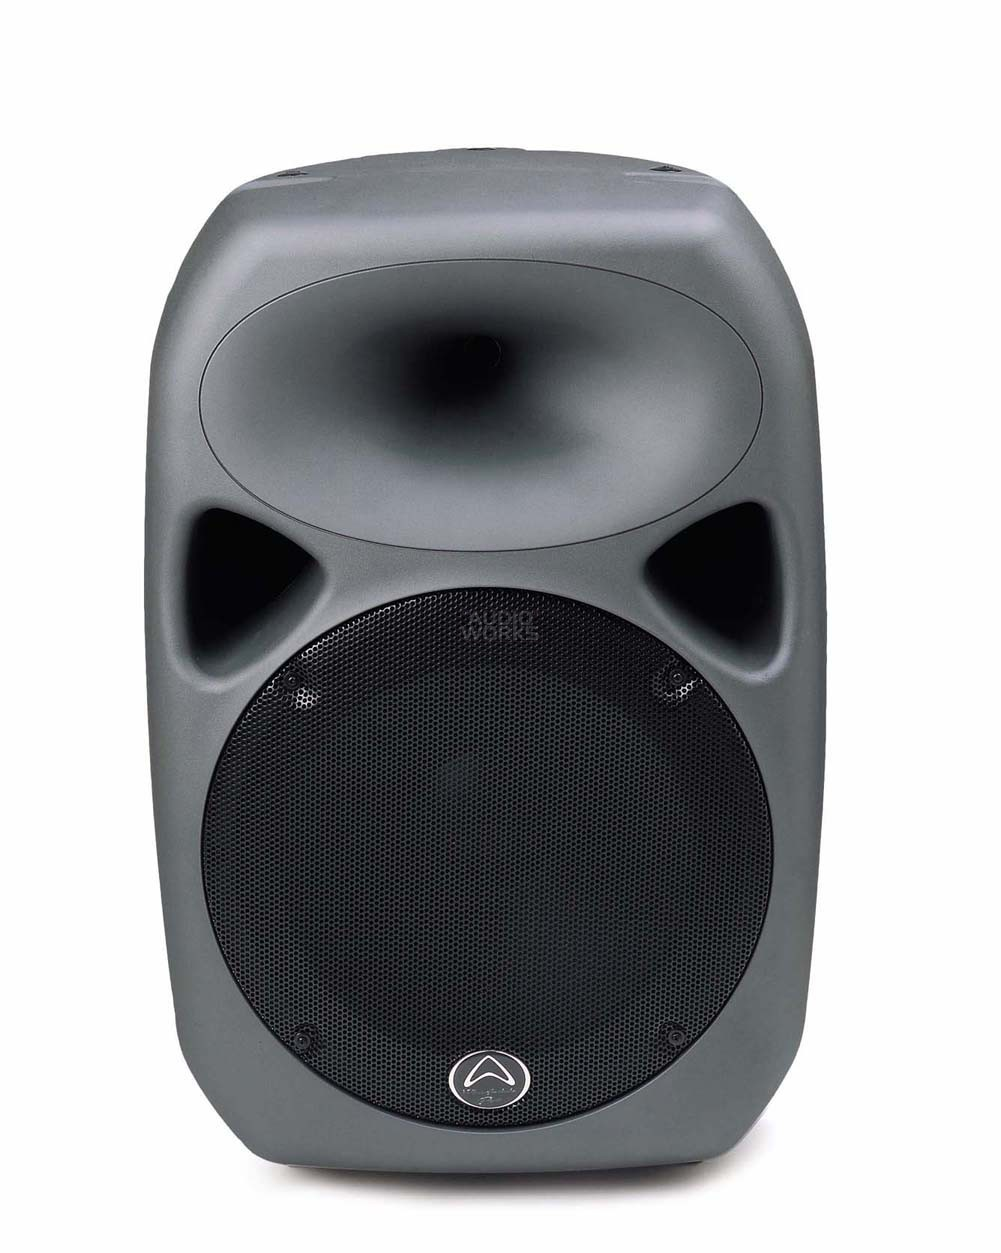 WHARFEDALE PRO TITAN 312A 200W RMS PROFESSIONAL ACTIVE LOUDSPEAKER